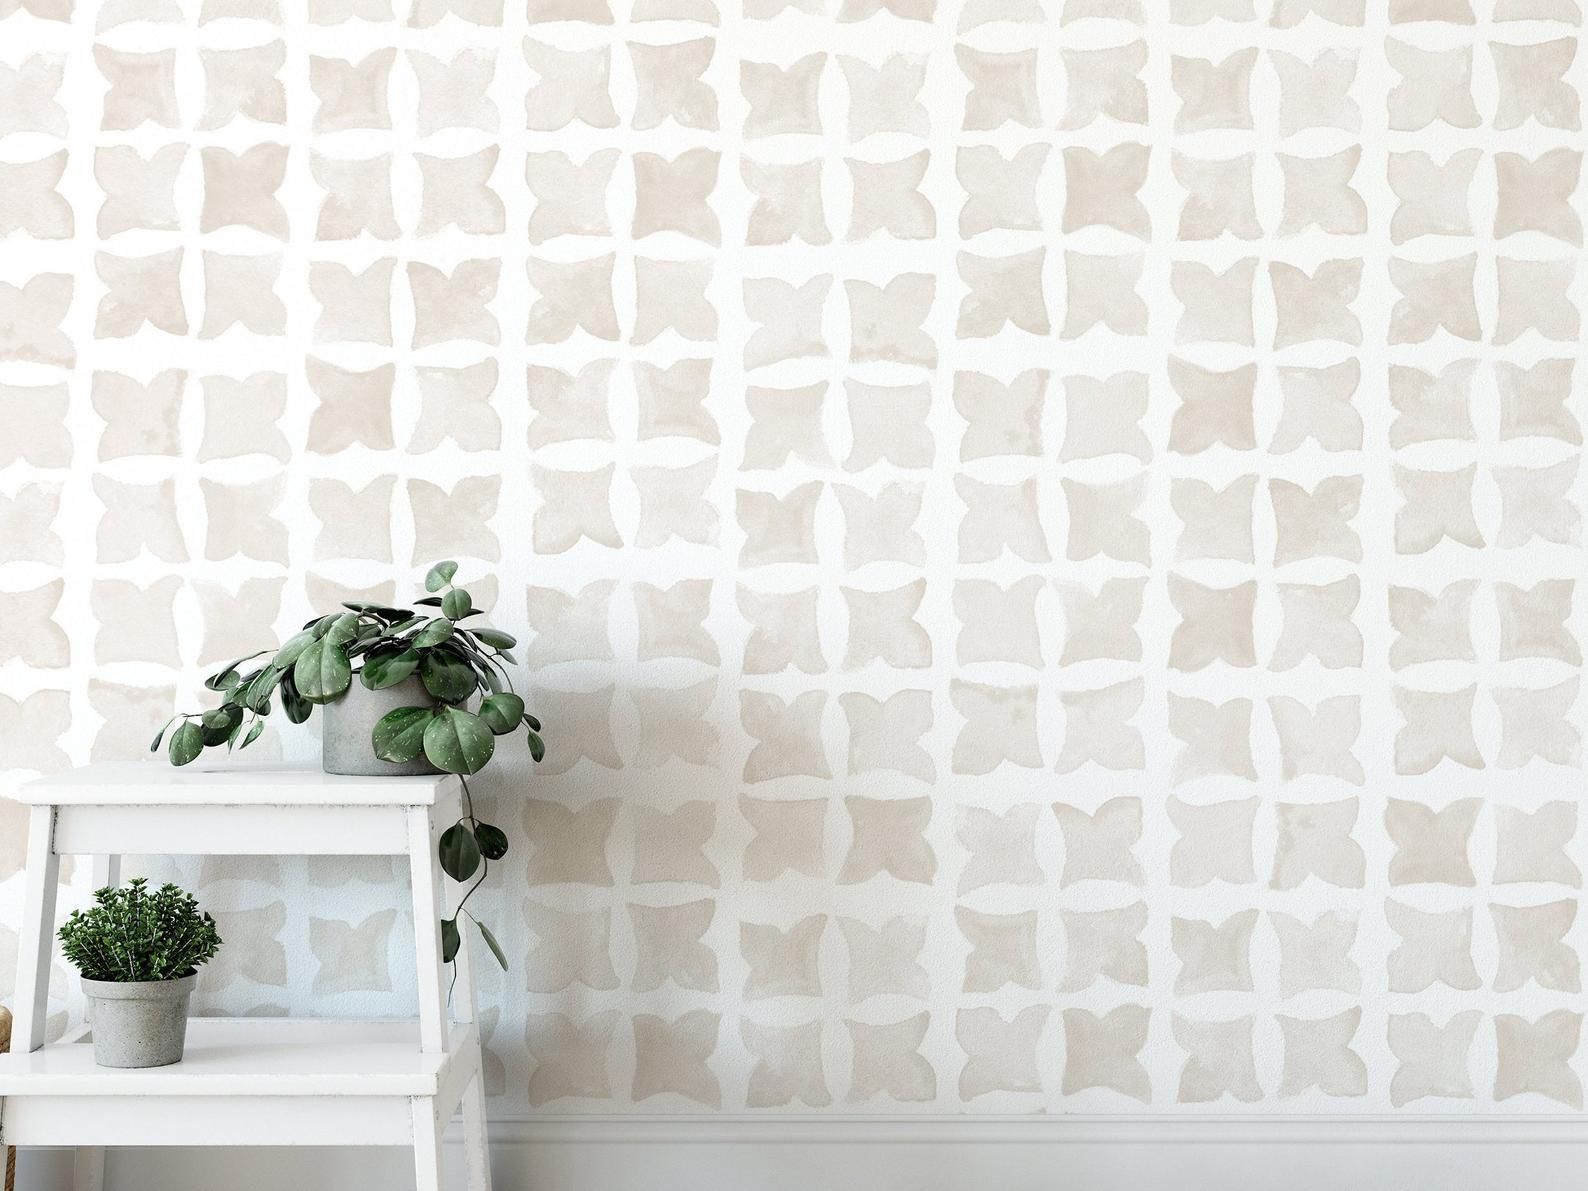 Moroccan Wind Wallpaper Linen Color Tile Wallpaper Peel And Stick Wallpaper Removable Accent Wall Multiple Colors Available In 2020 Peel And Stick Wallpaper Tile Wallpaper Accent Wall